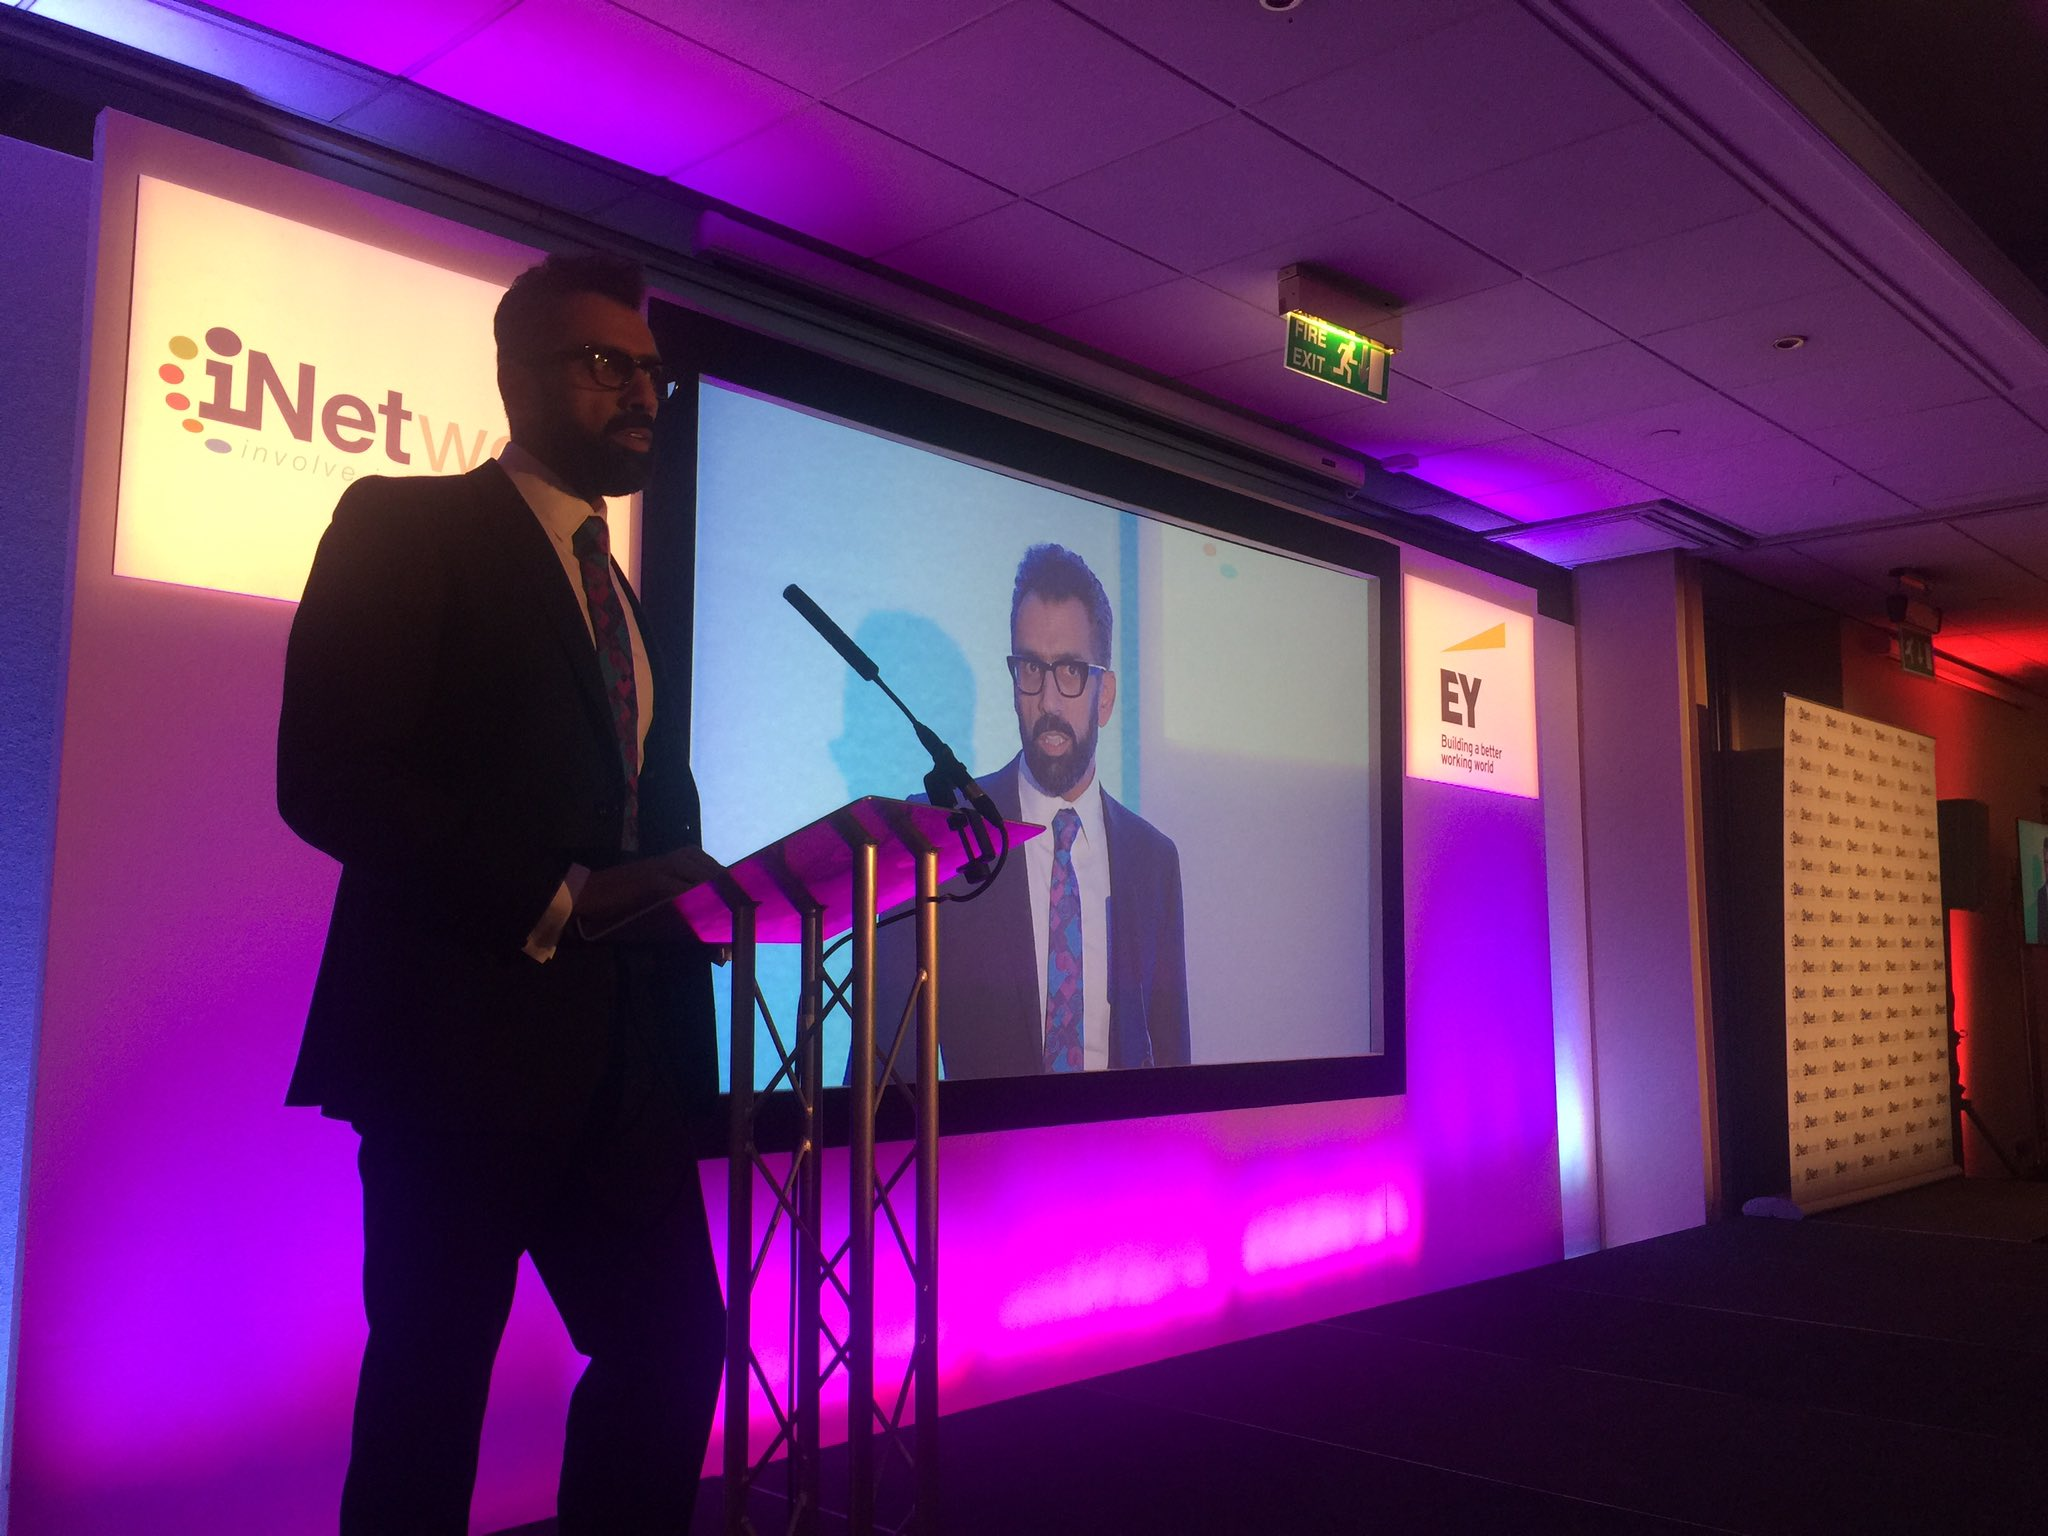 #inetworkawards Darra talks about the need for innovation in public services #EY https://t.co/JGBm31uvJh